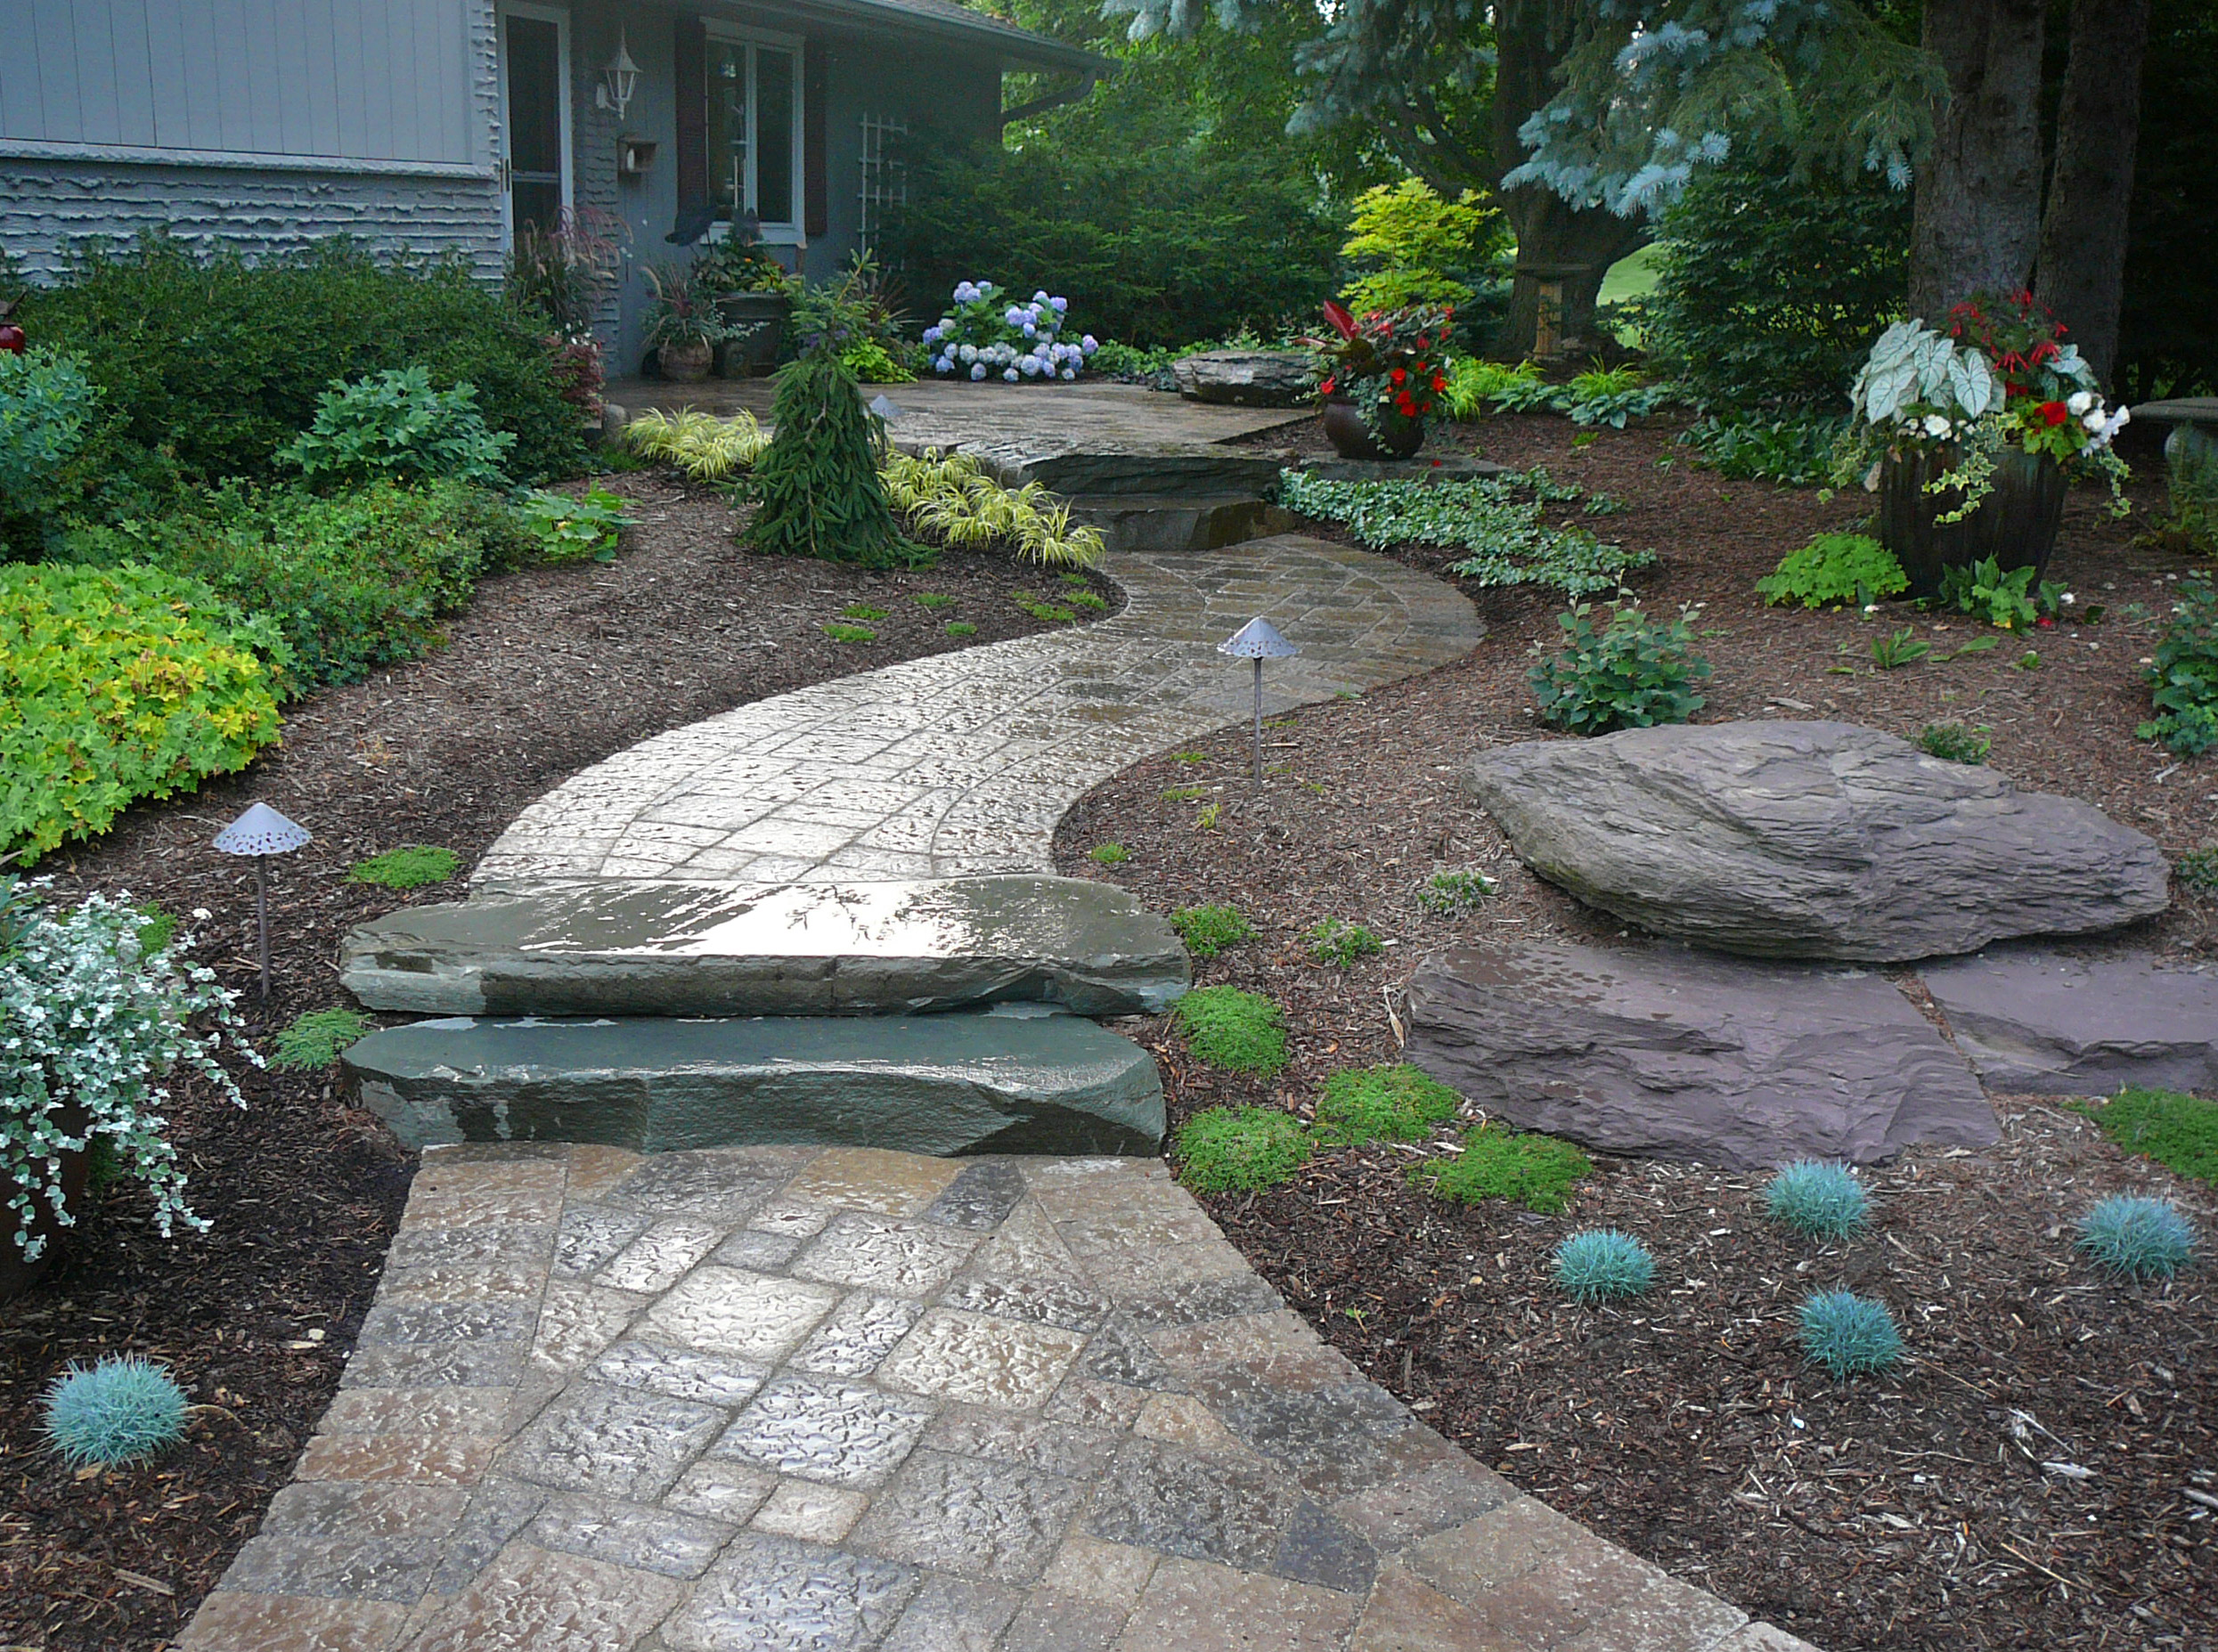 Combination of natural stone and paver stone brings a unique charm to this walkway.